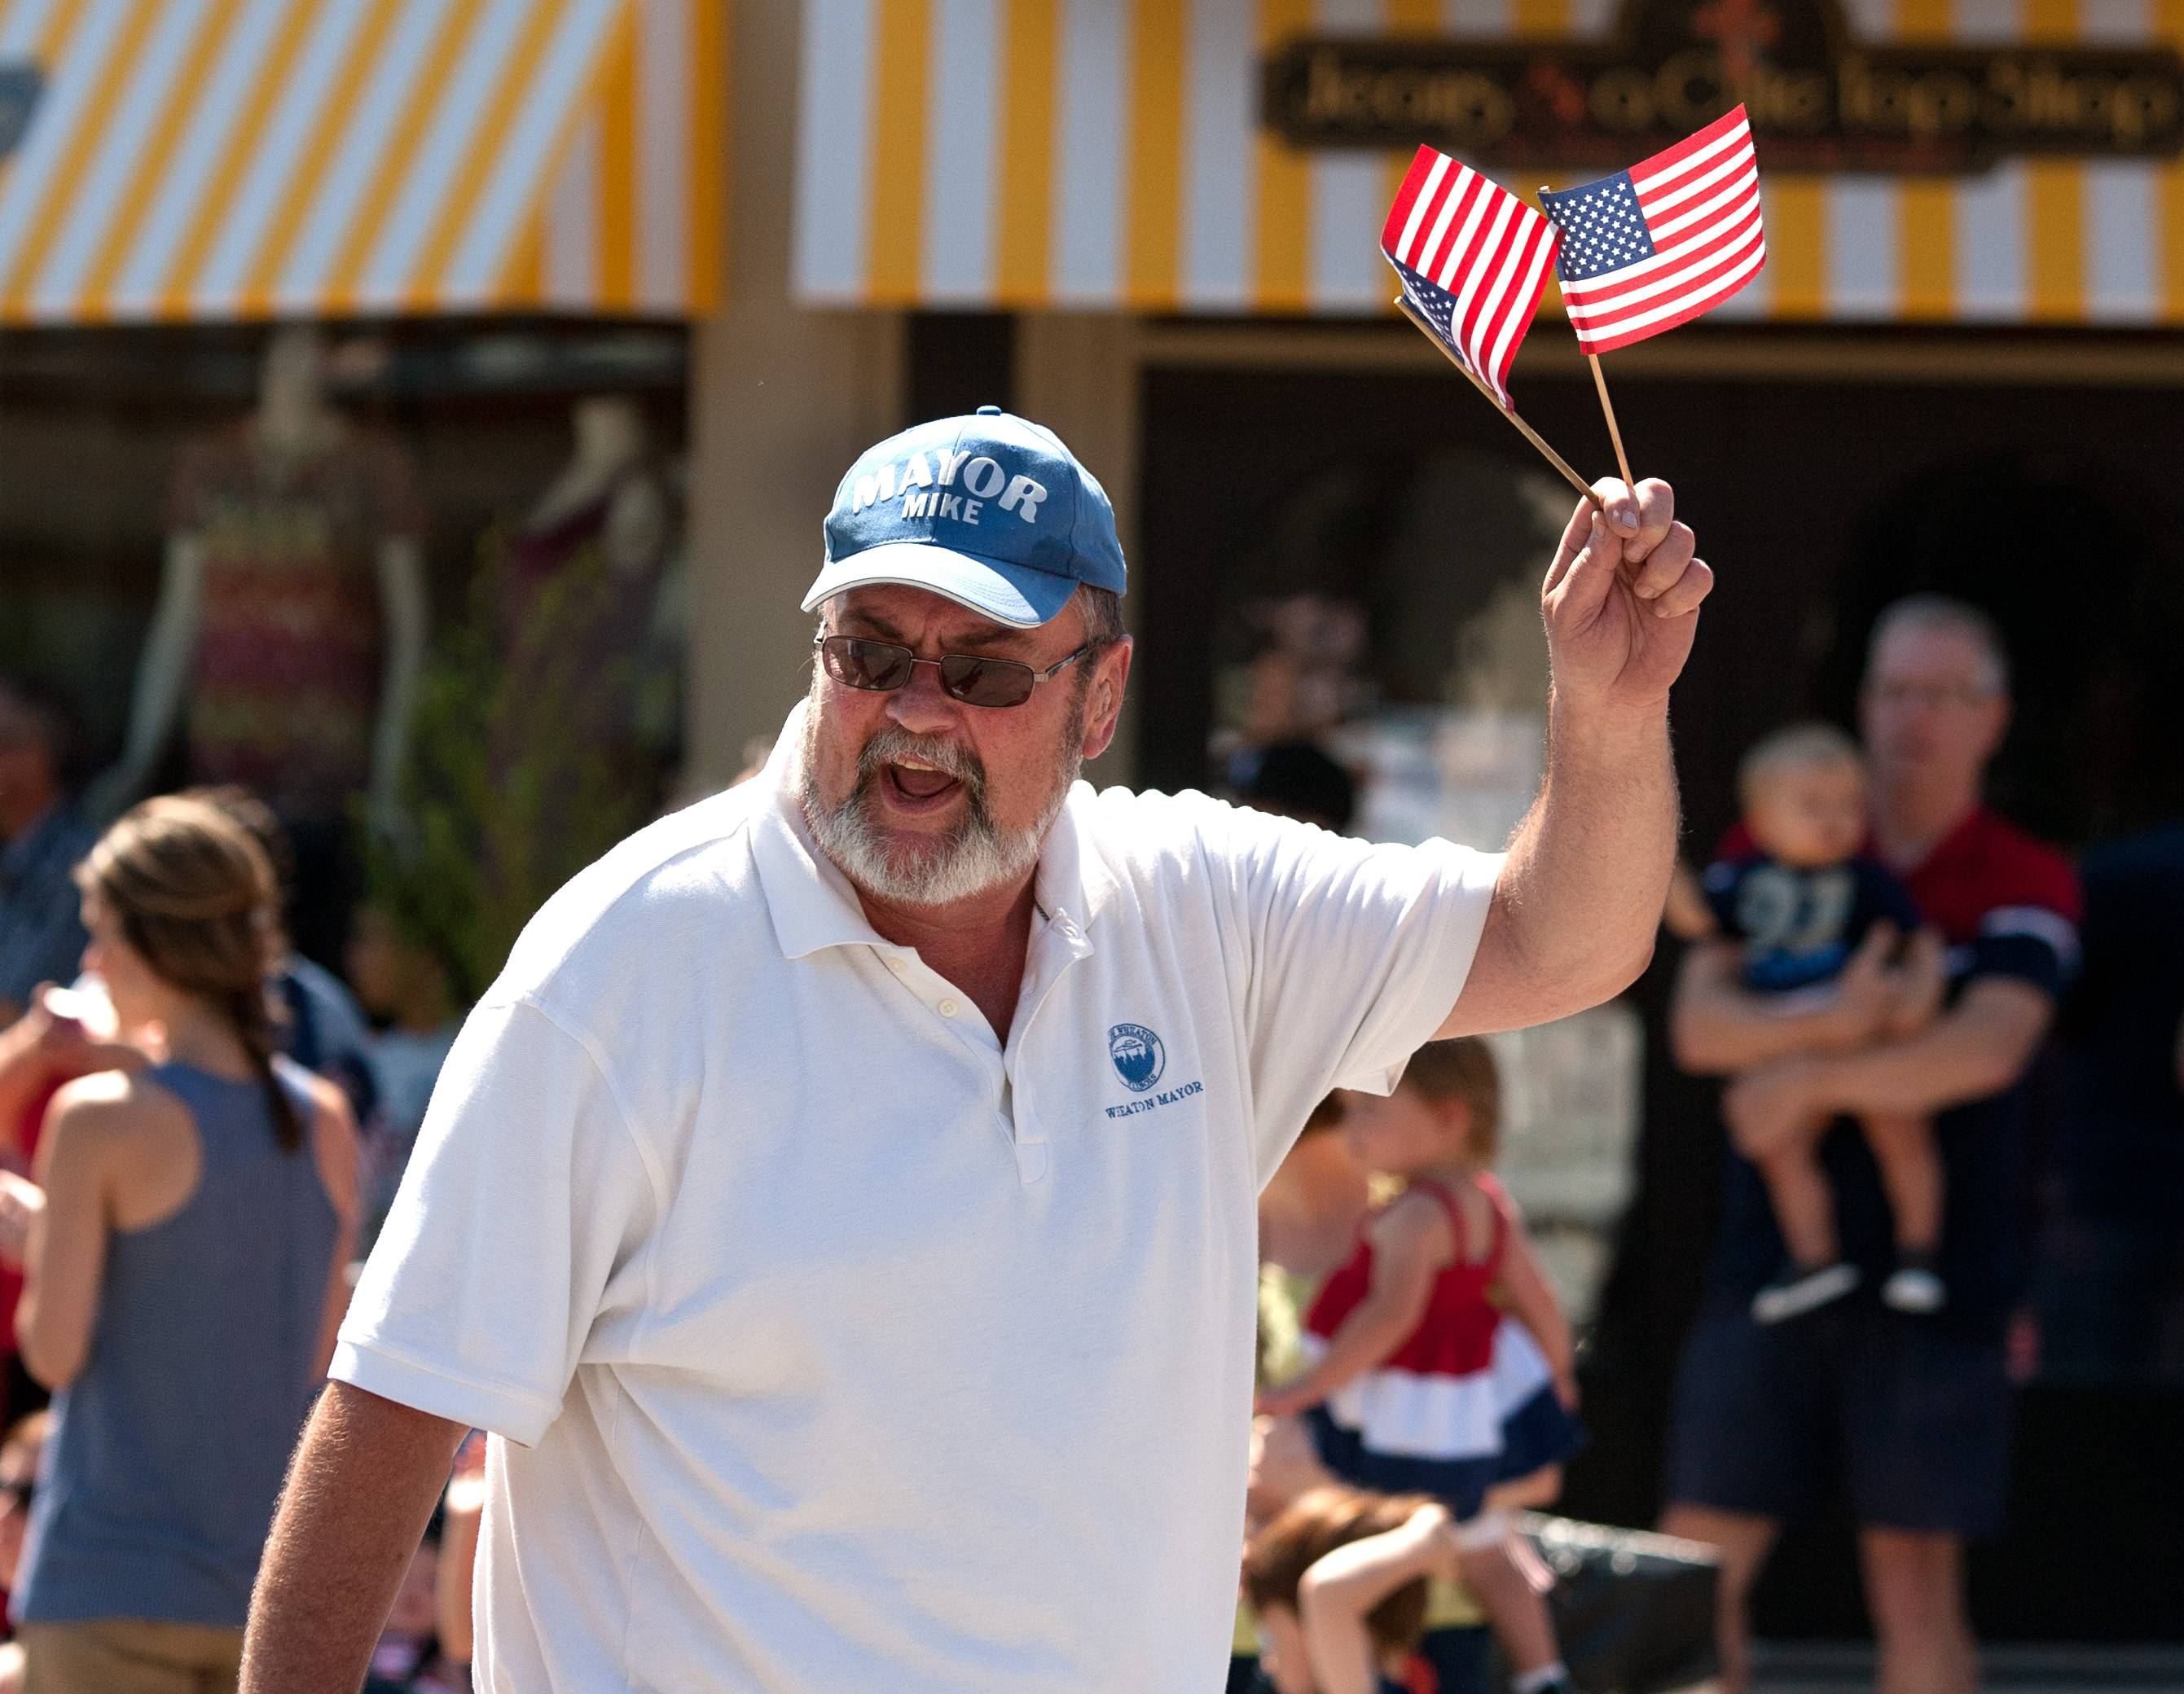 Wheaton Mayor Michael Gresk marches in Wheaton's 2014 Independence Day parade.